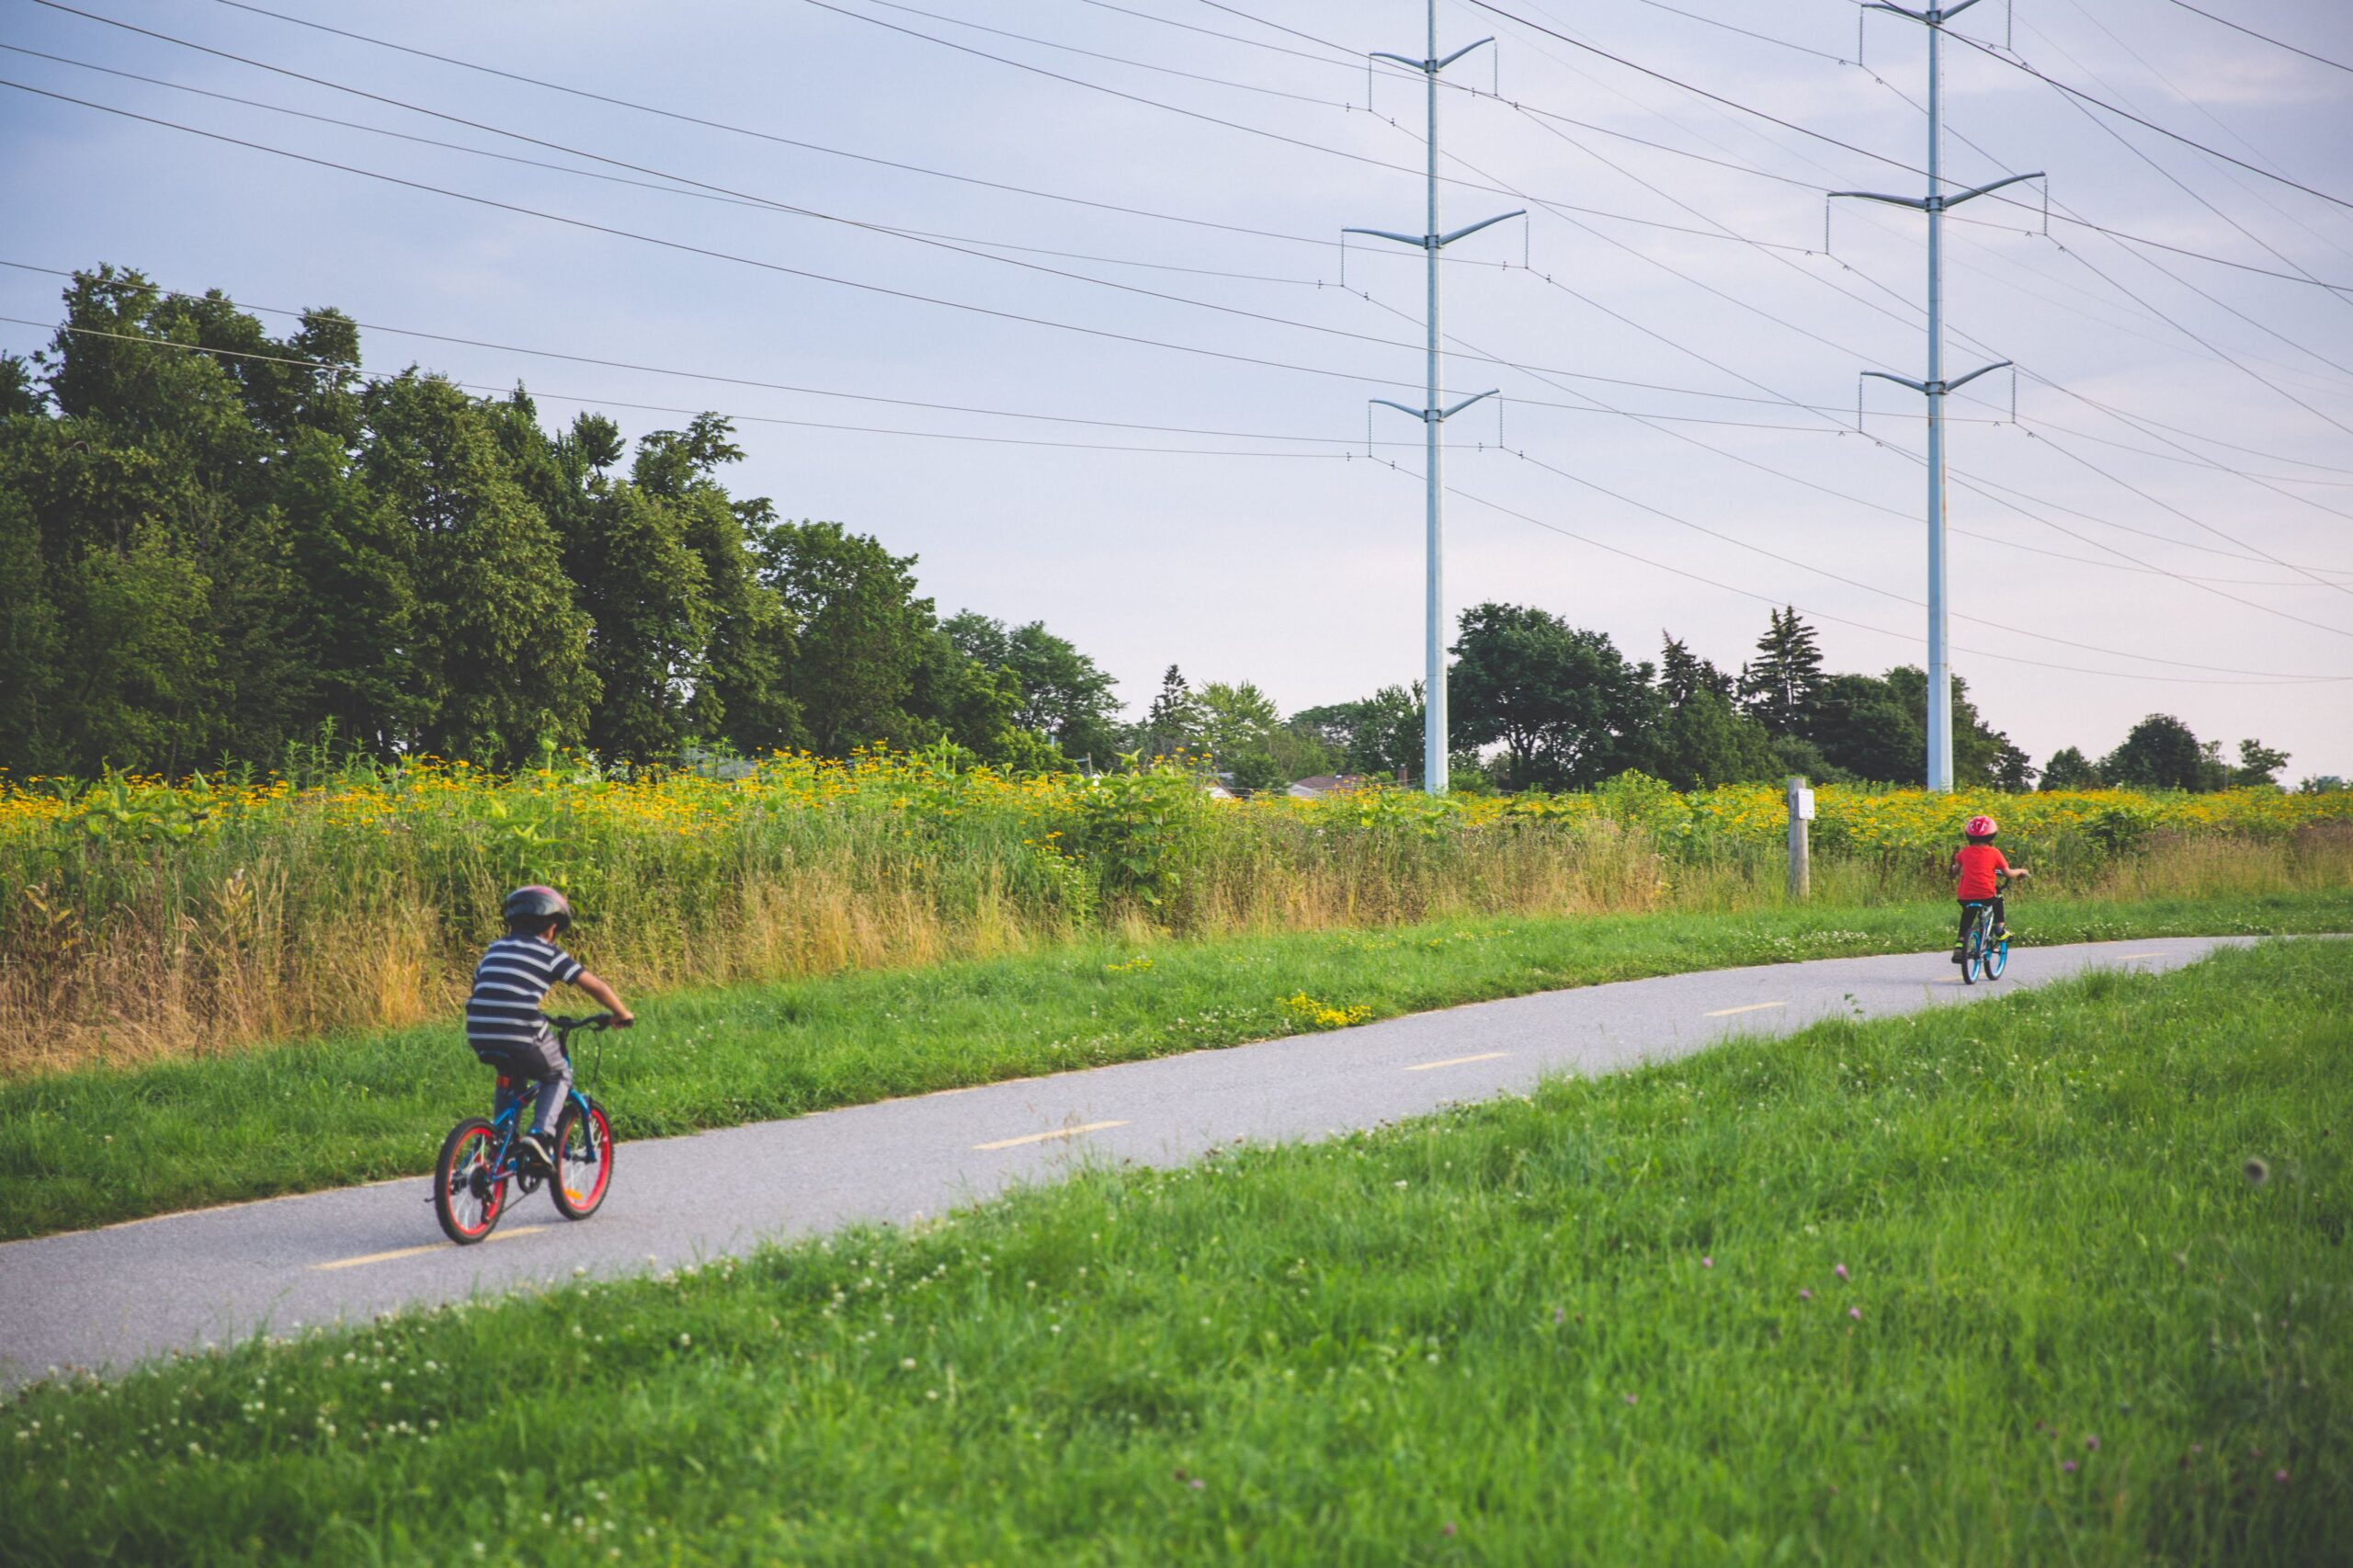 Two children cycling on a bike path